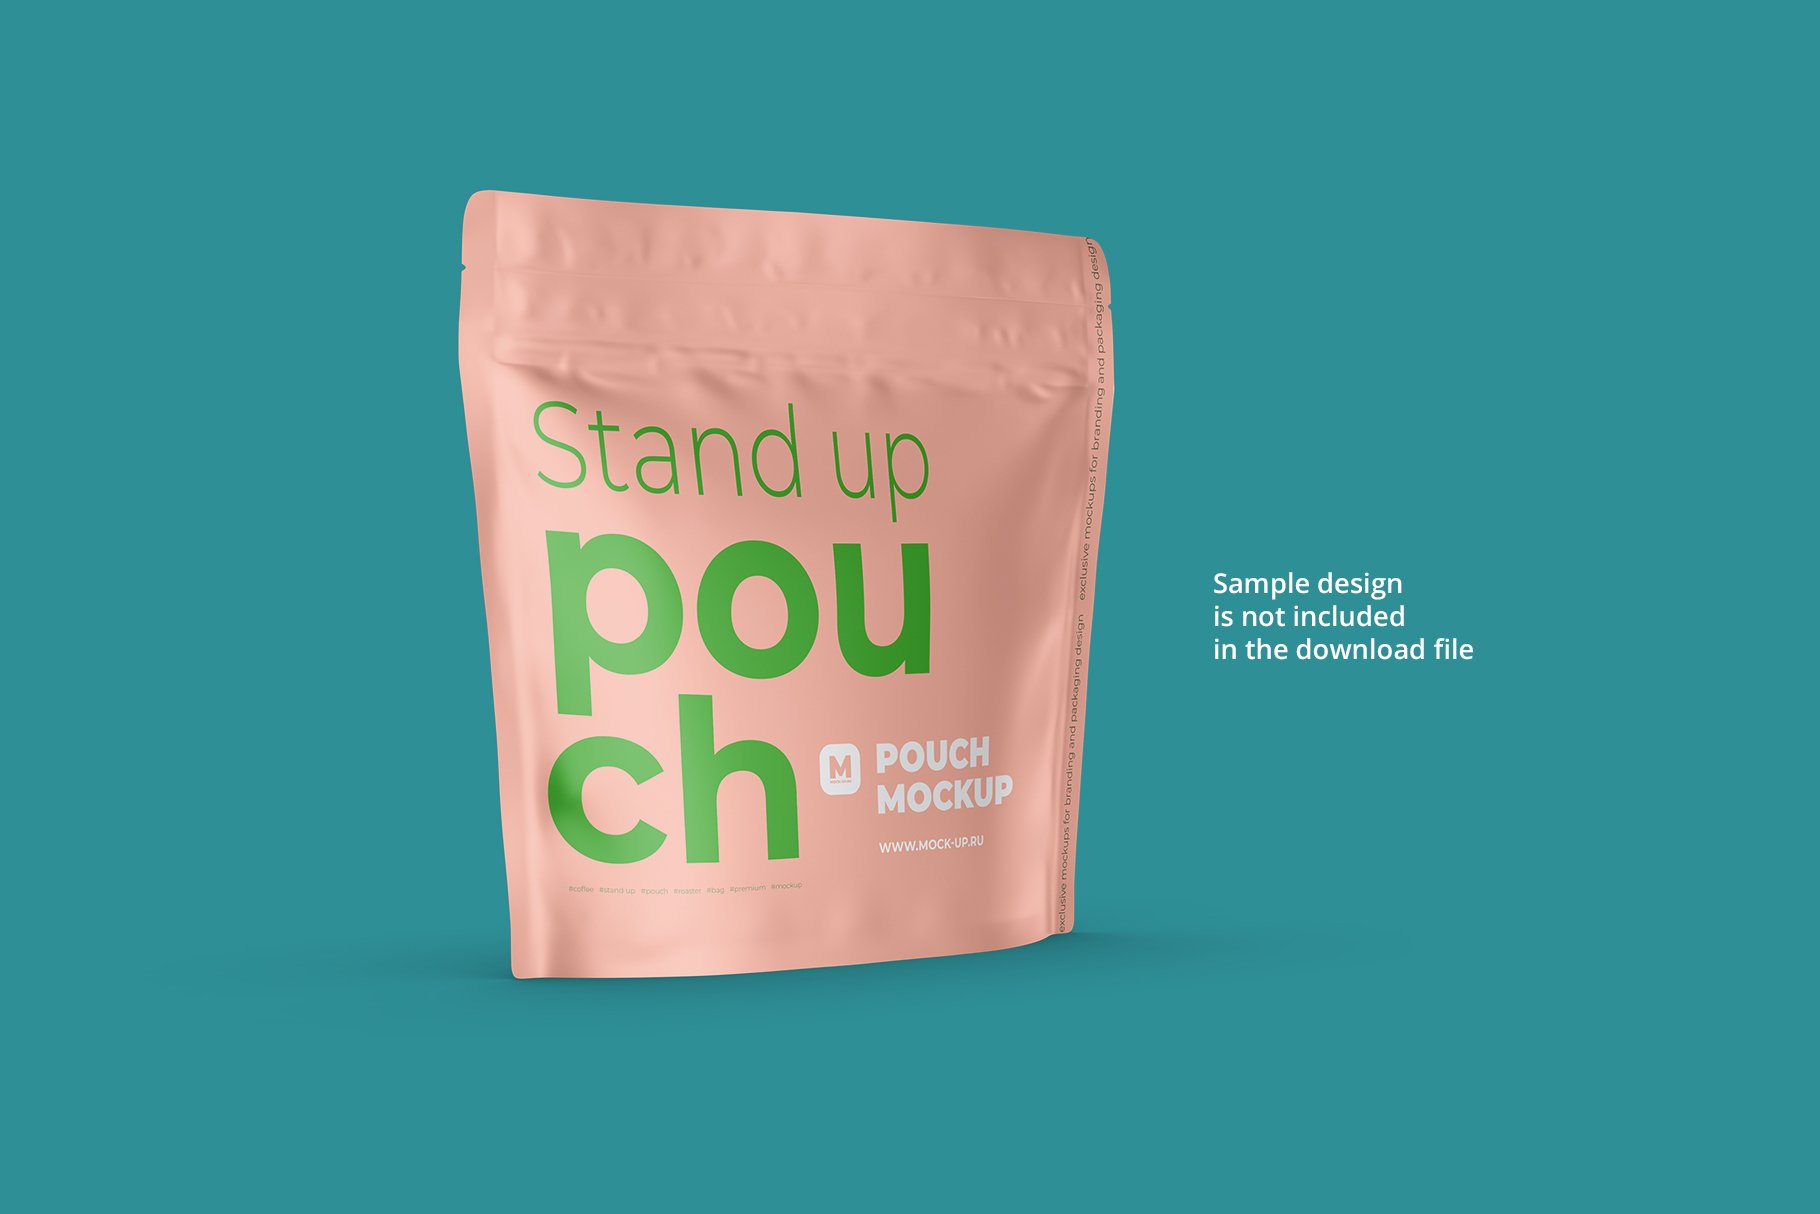 Zip Stand-up Pouch Mockup square example image 10